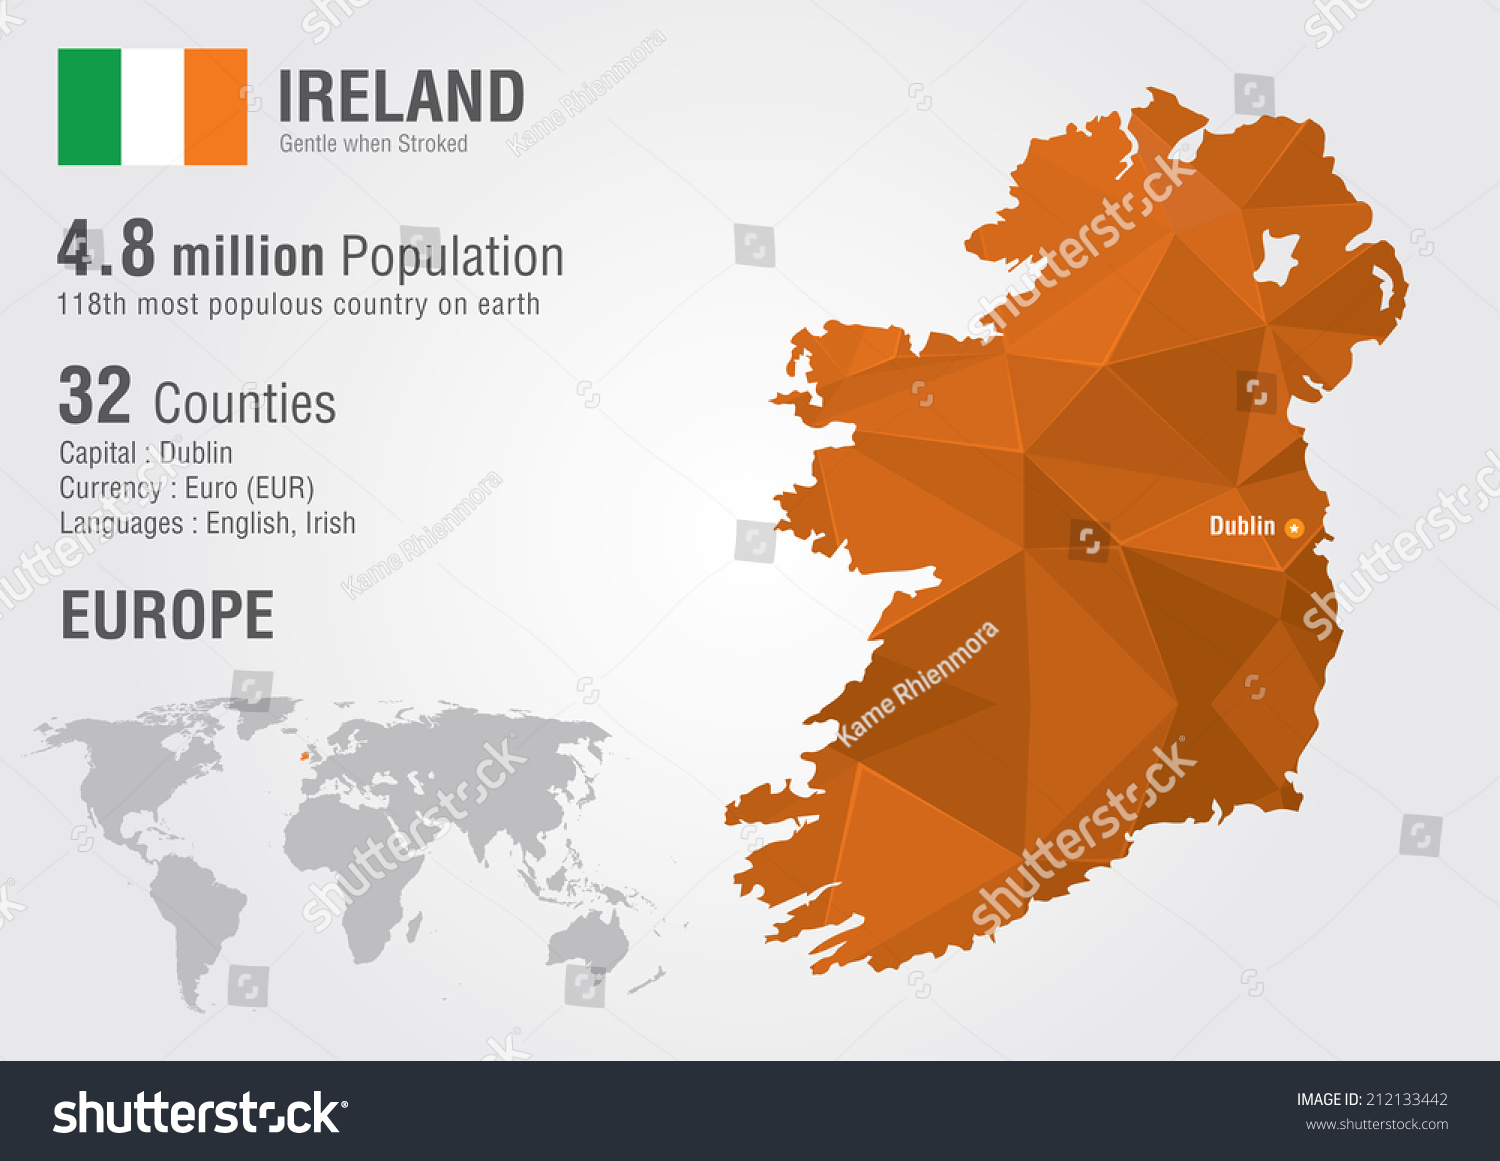 Ireland world map pixel diamond texture vectores en stock 212133442 ireland world map pixel diamond texture vectores en stock 212133442 shutterstock gumiabroncs Image collections